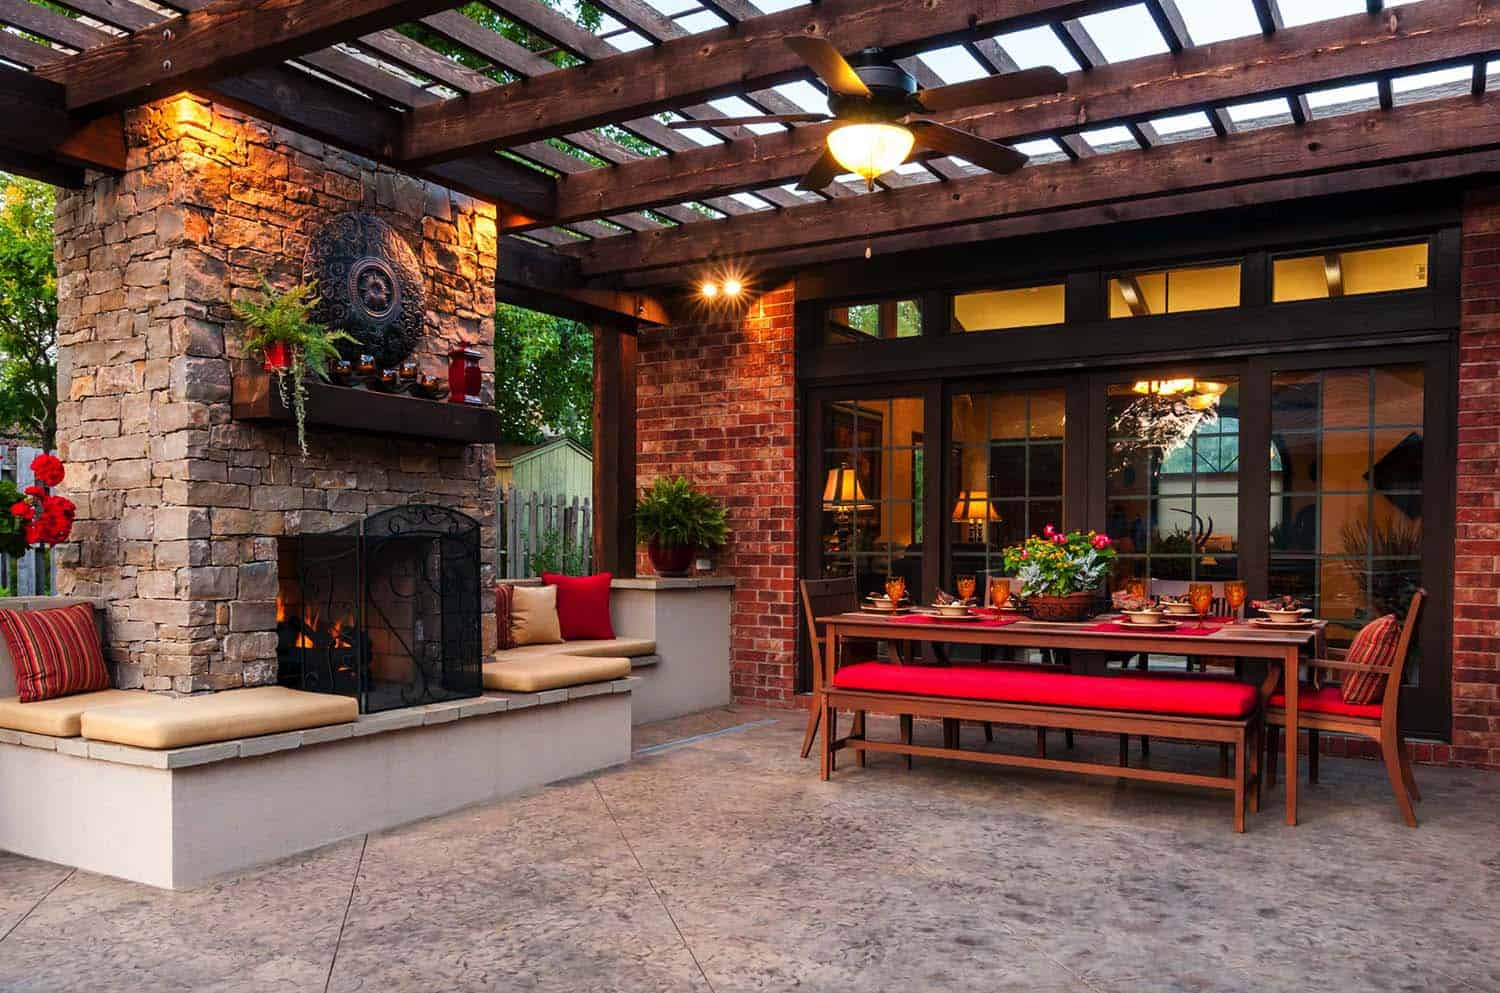 30+ Irresistible outdoor fireplace ideas that will leave ... on Outdoor Kitchen And Fireplace Ideas id=44023